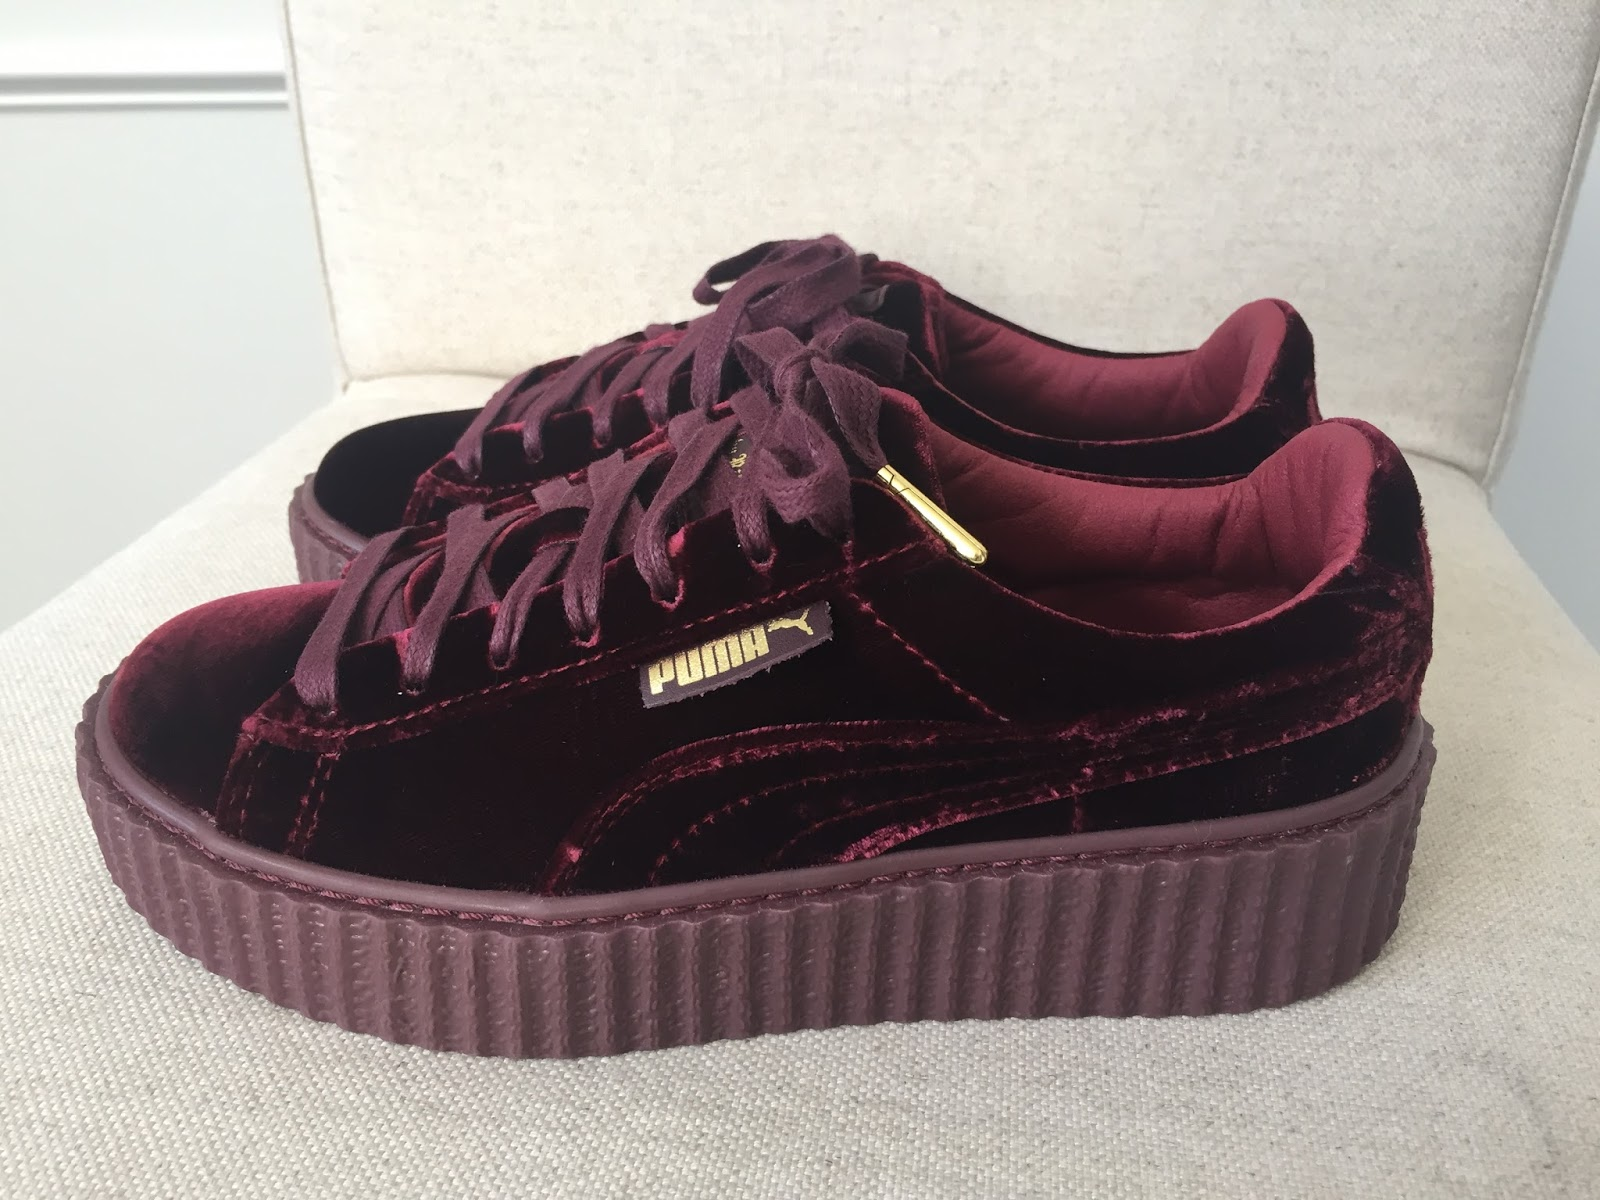 580864736dcf These velvet creepers by Puma are amazing. They re super soft and  comfortable